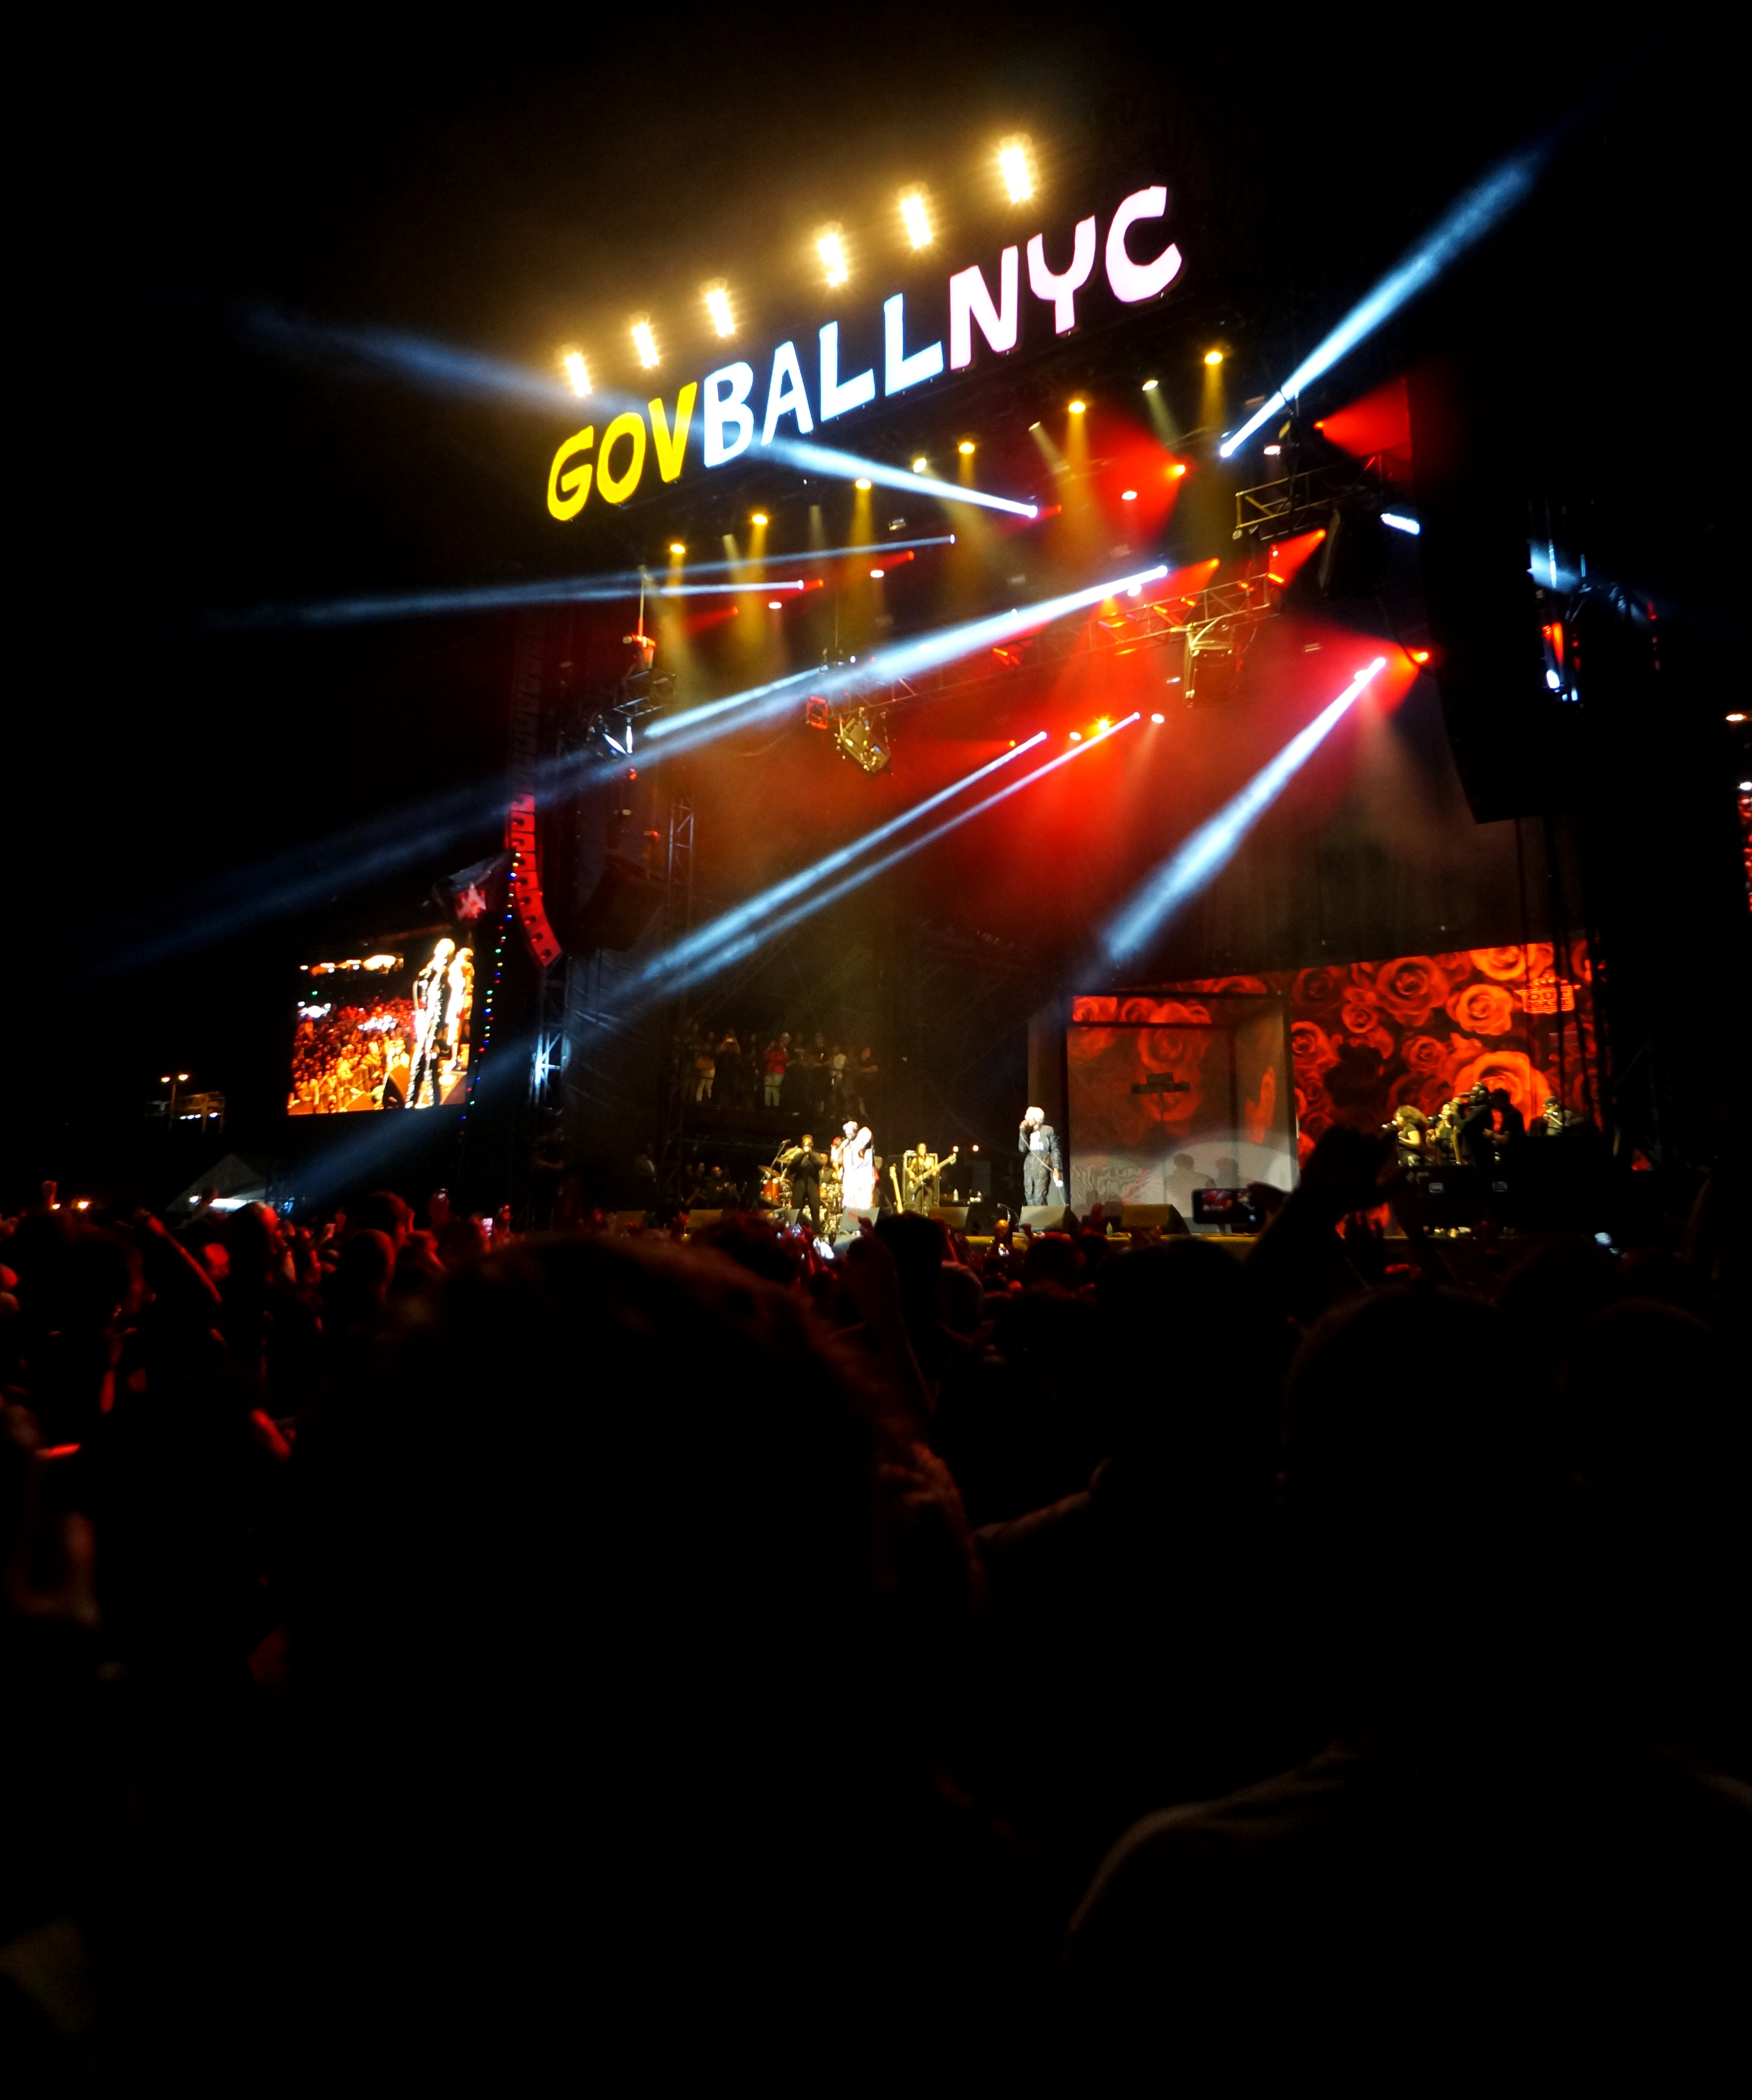 Outkast headlining at Governors Ball Music Festival.